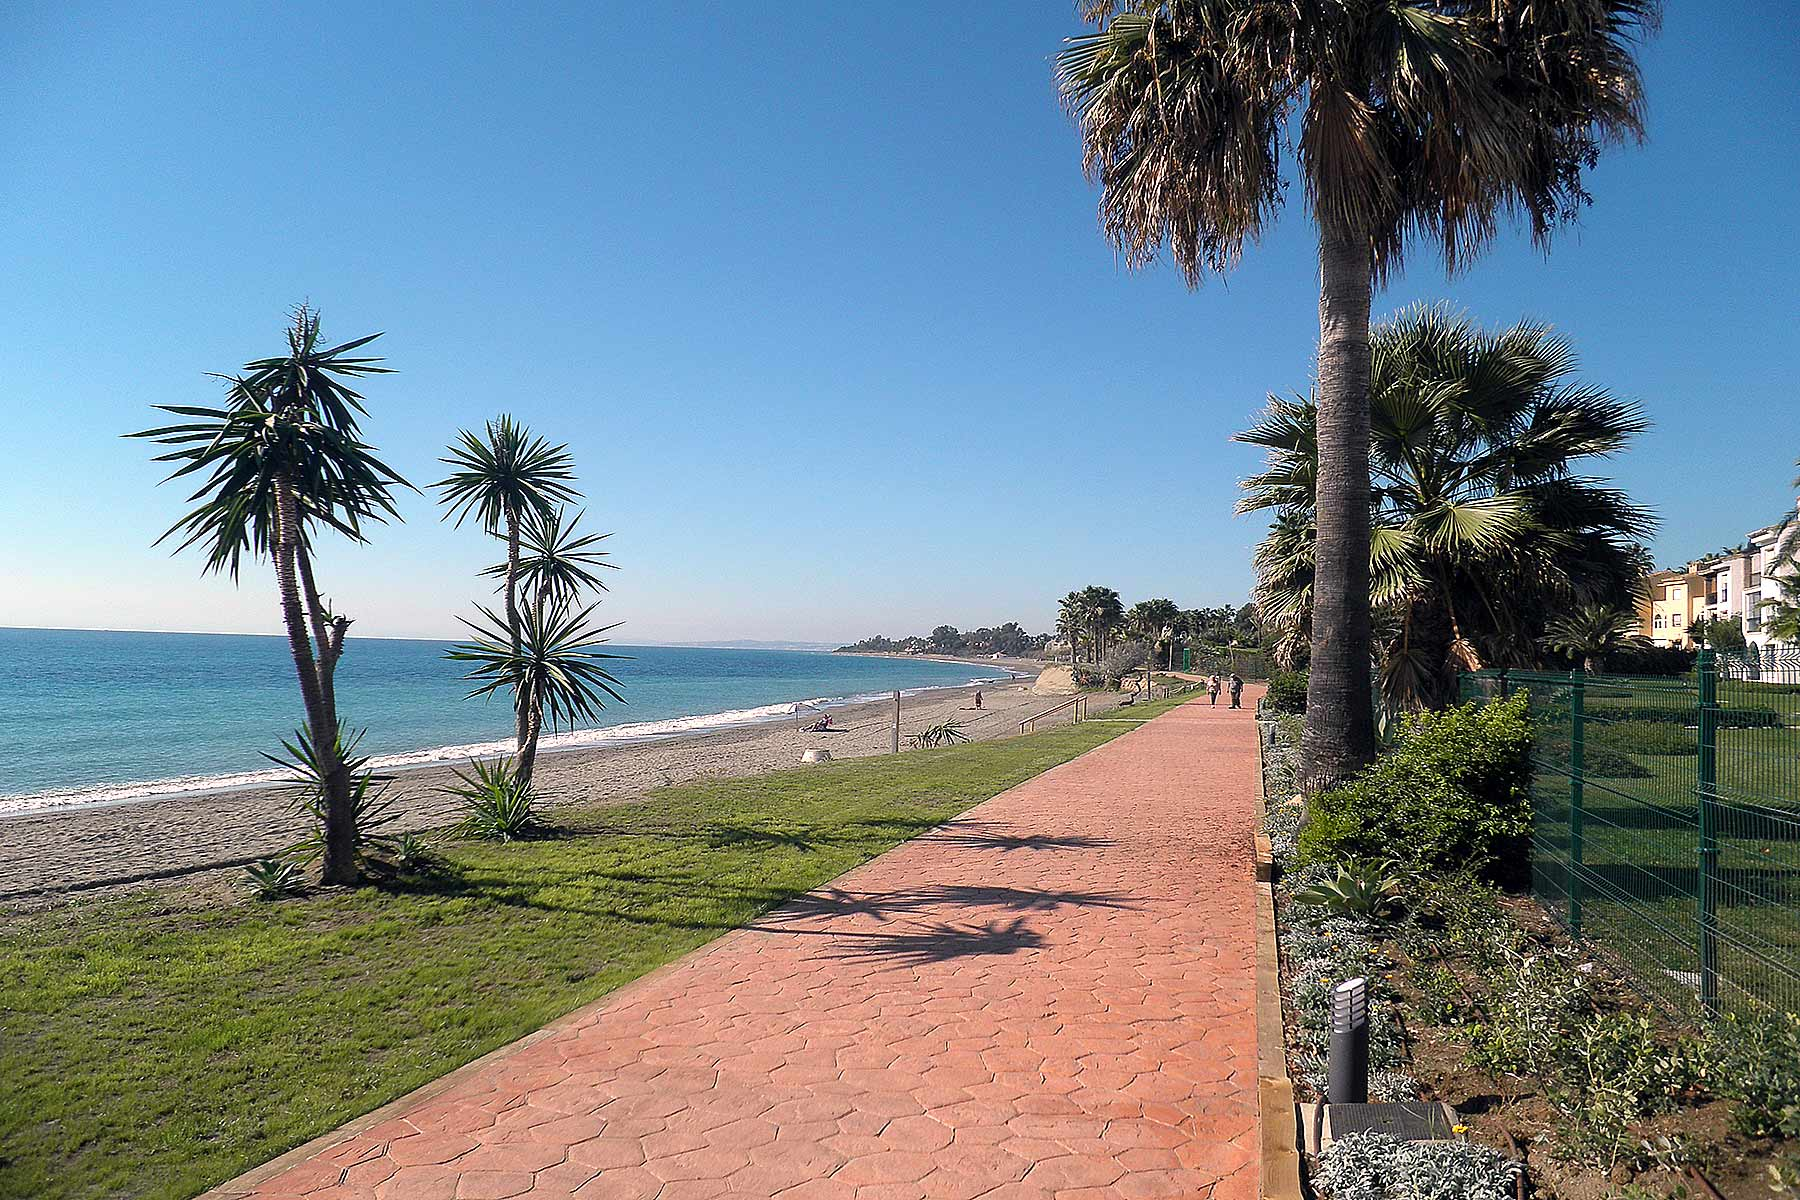 Holiday apartments Estepona Hacienda Beach sea side promenade